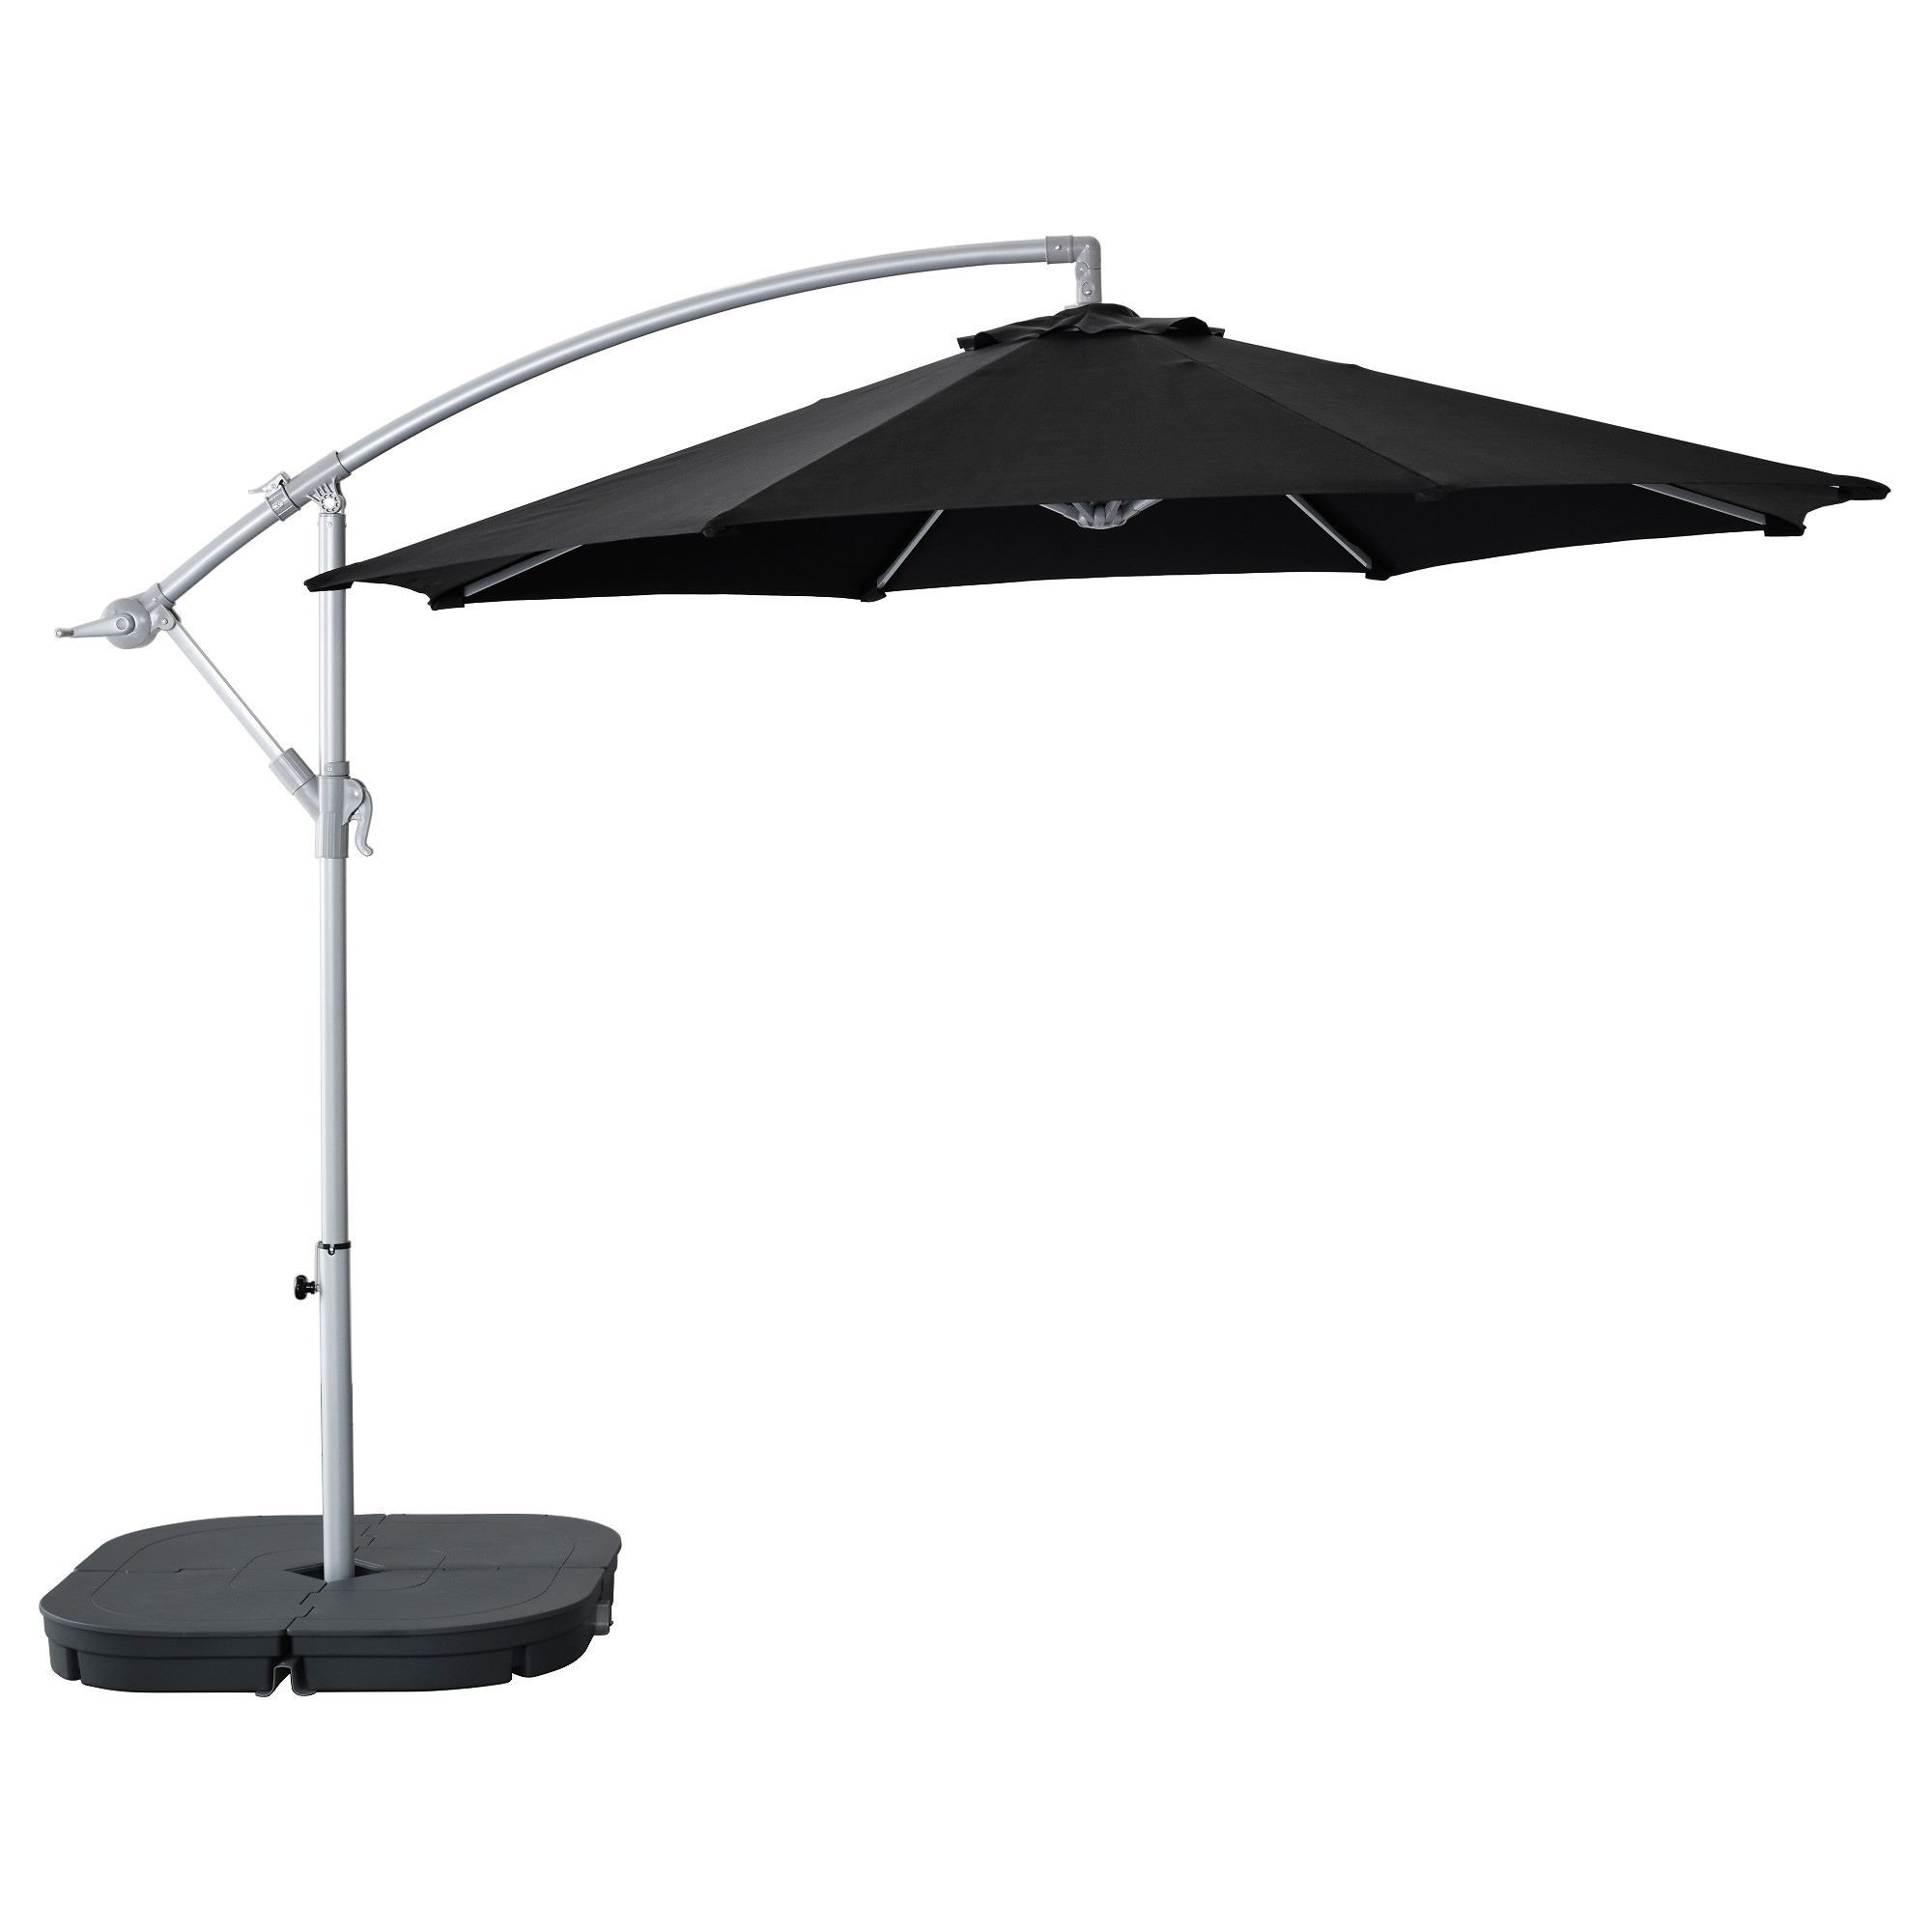 KARLS– SVART– Hanging umbrella with base black dark gray IKEA